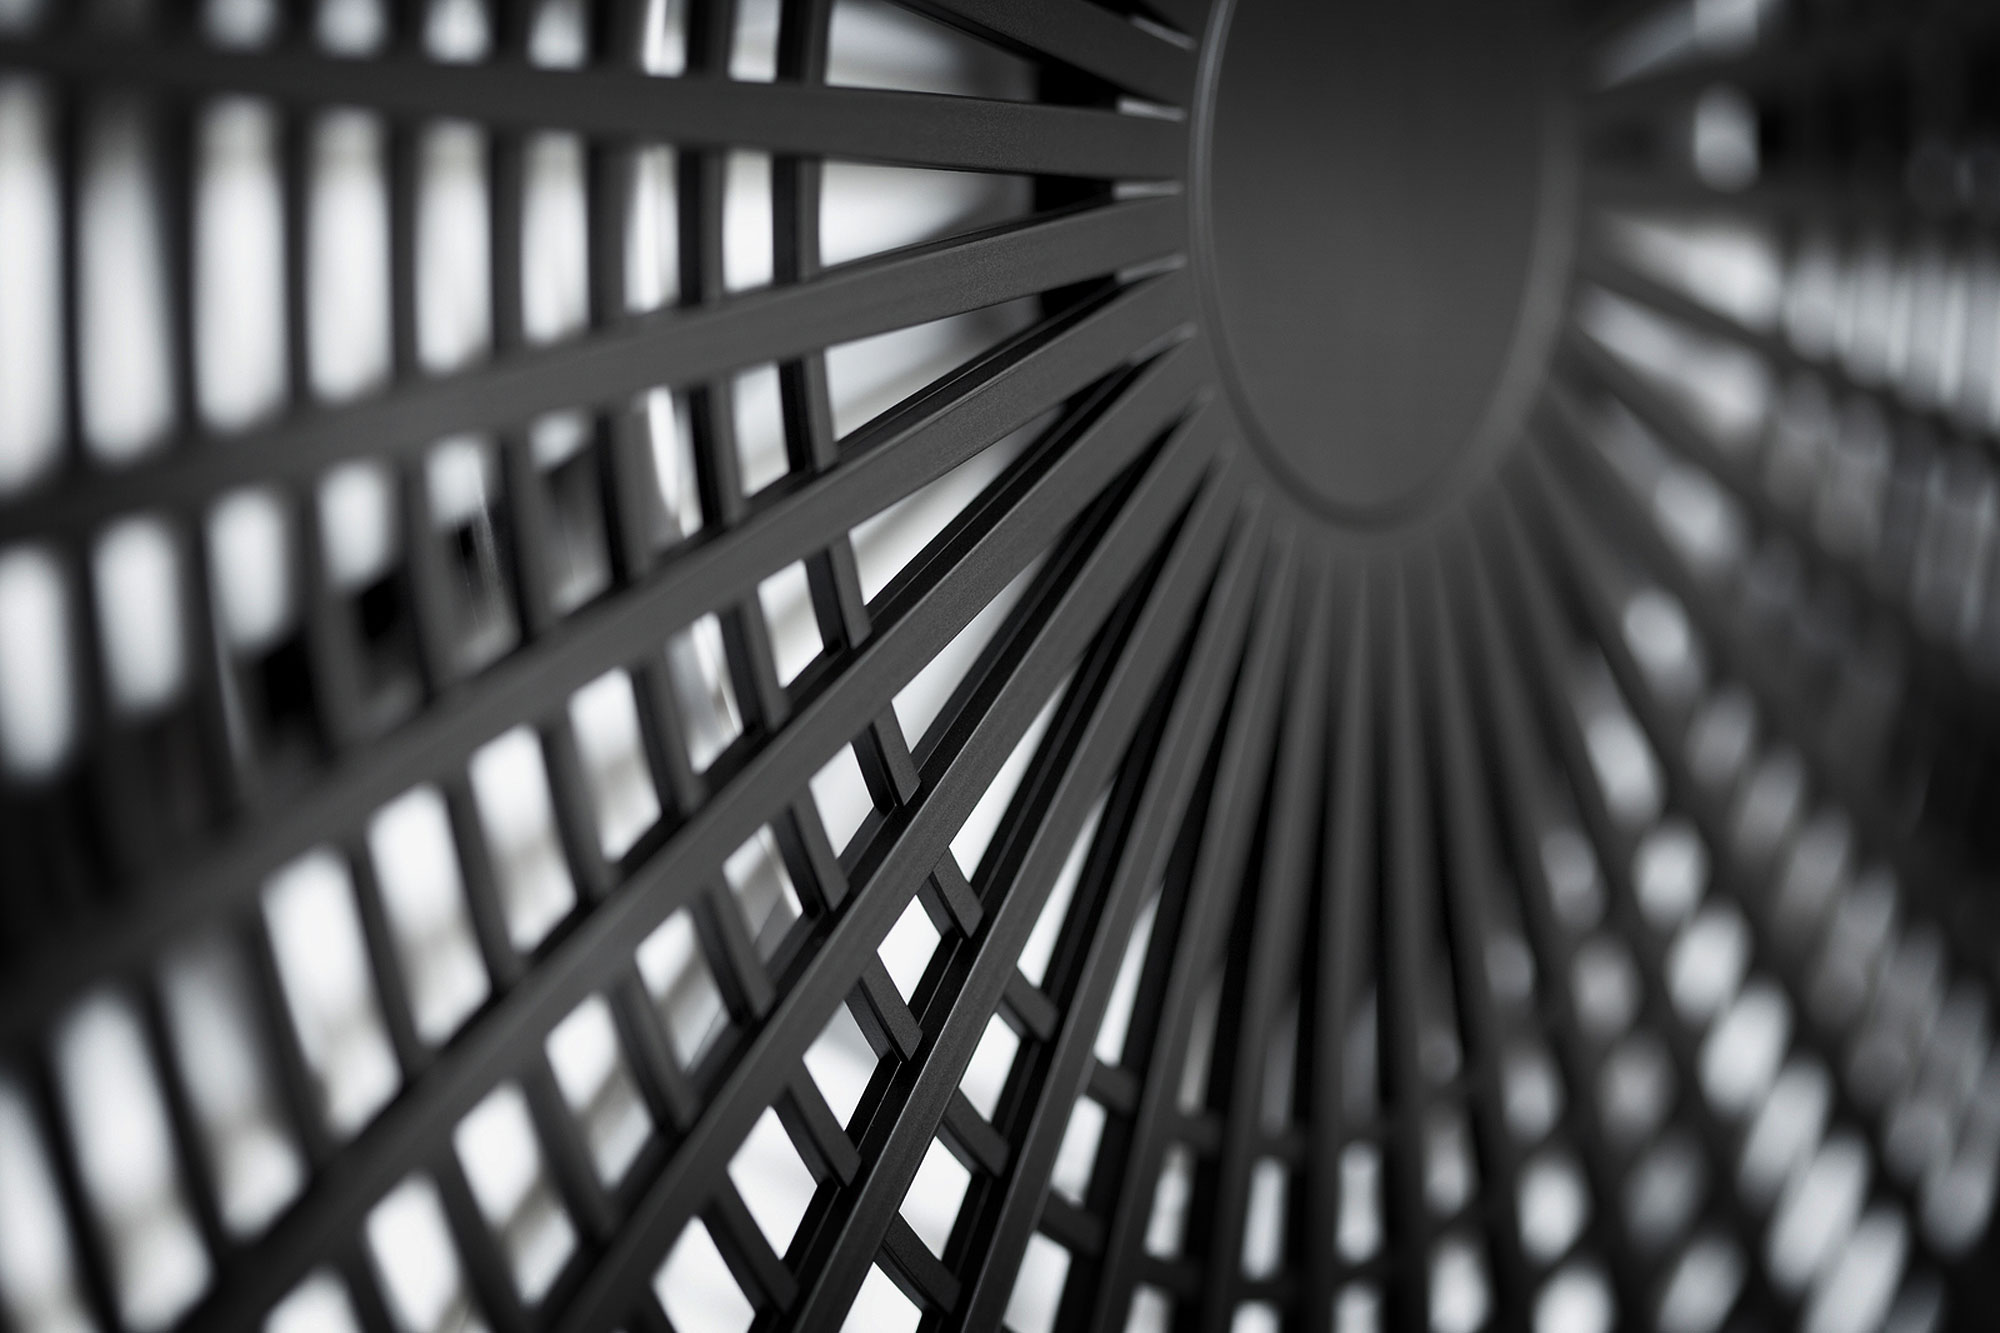 Alpha_Mechanical-Large-Industrial-Fan-Close-up.jpg